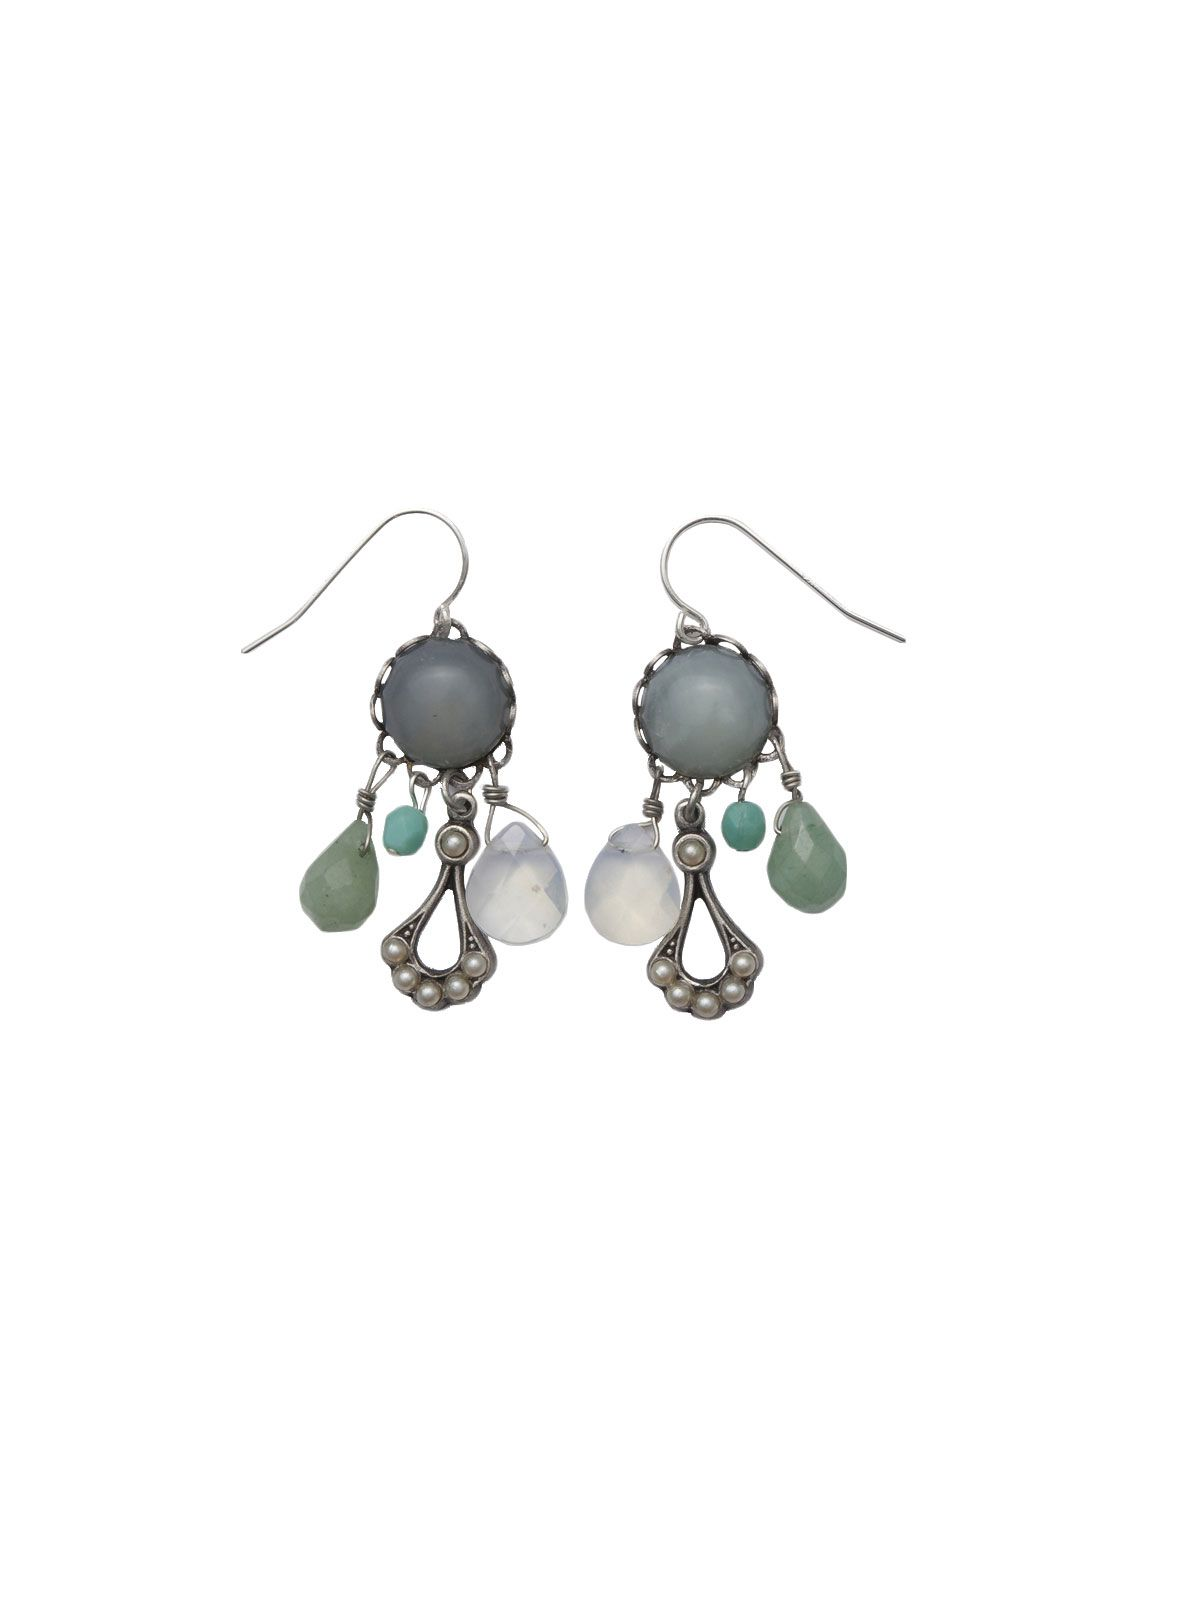 Stunning new jade cabochon with drops of faceted sea glass, turquoise, aventurine, and glass pearls lend variety to this lovely nod to the past.